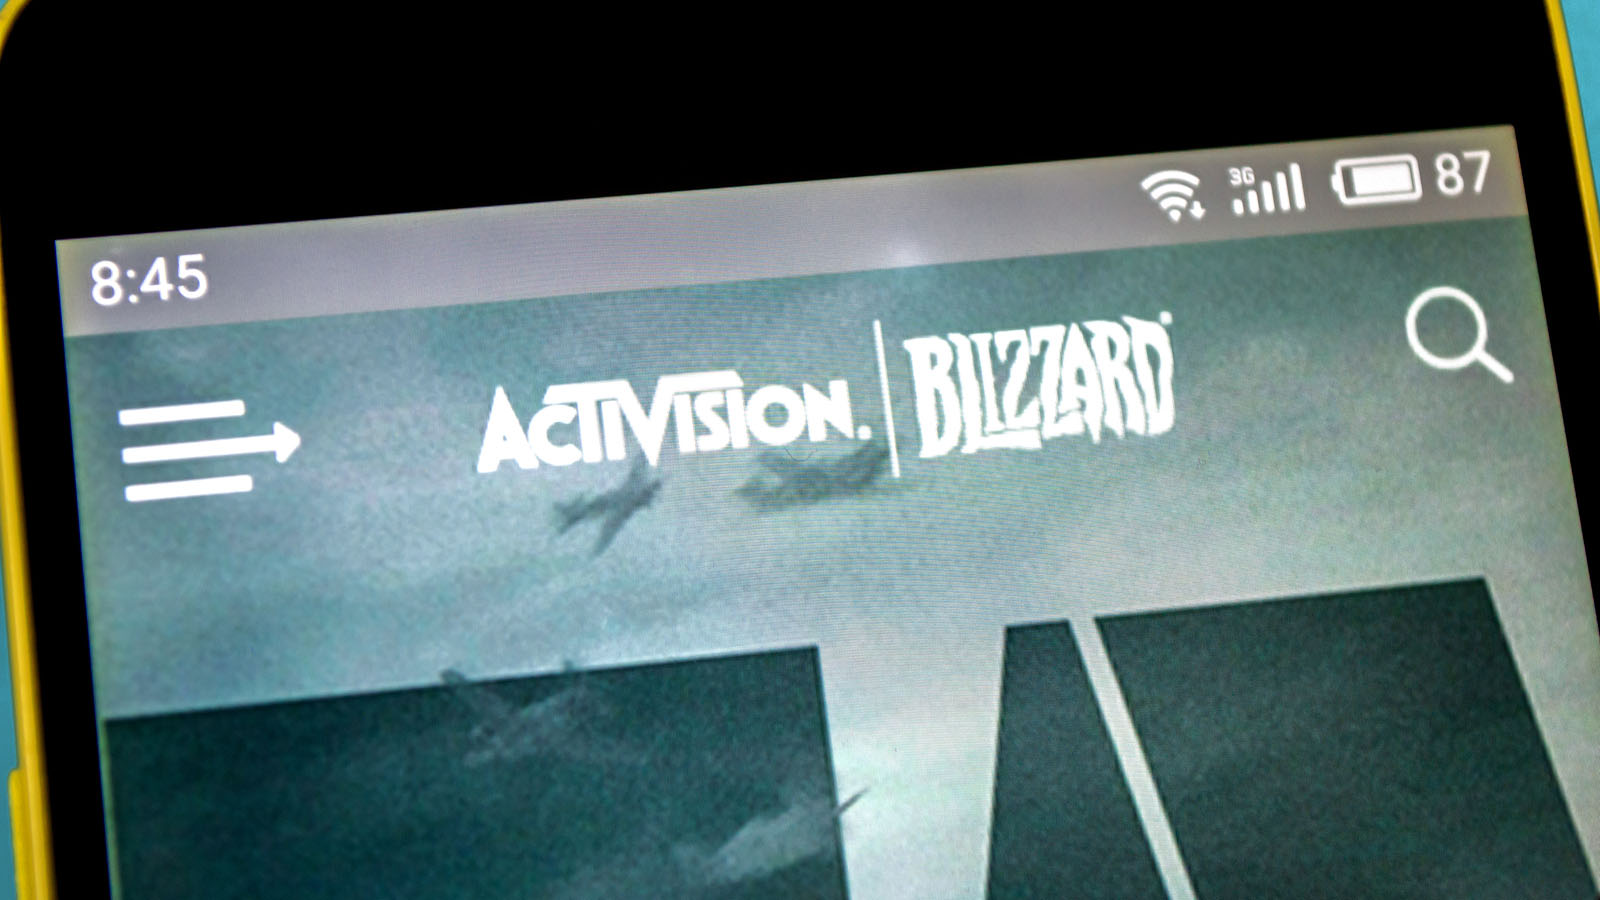 ATVI Stock News and Price / Activision Blizzard, Inc